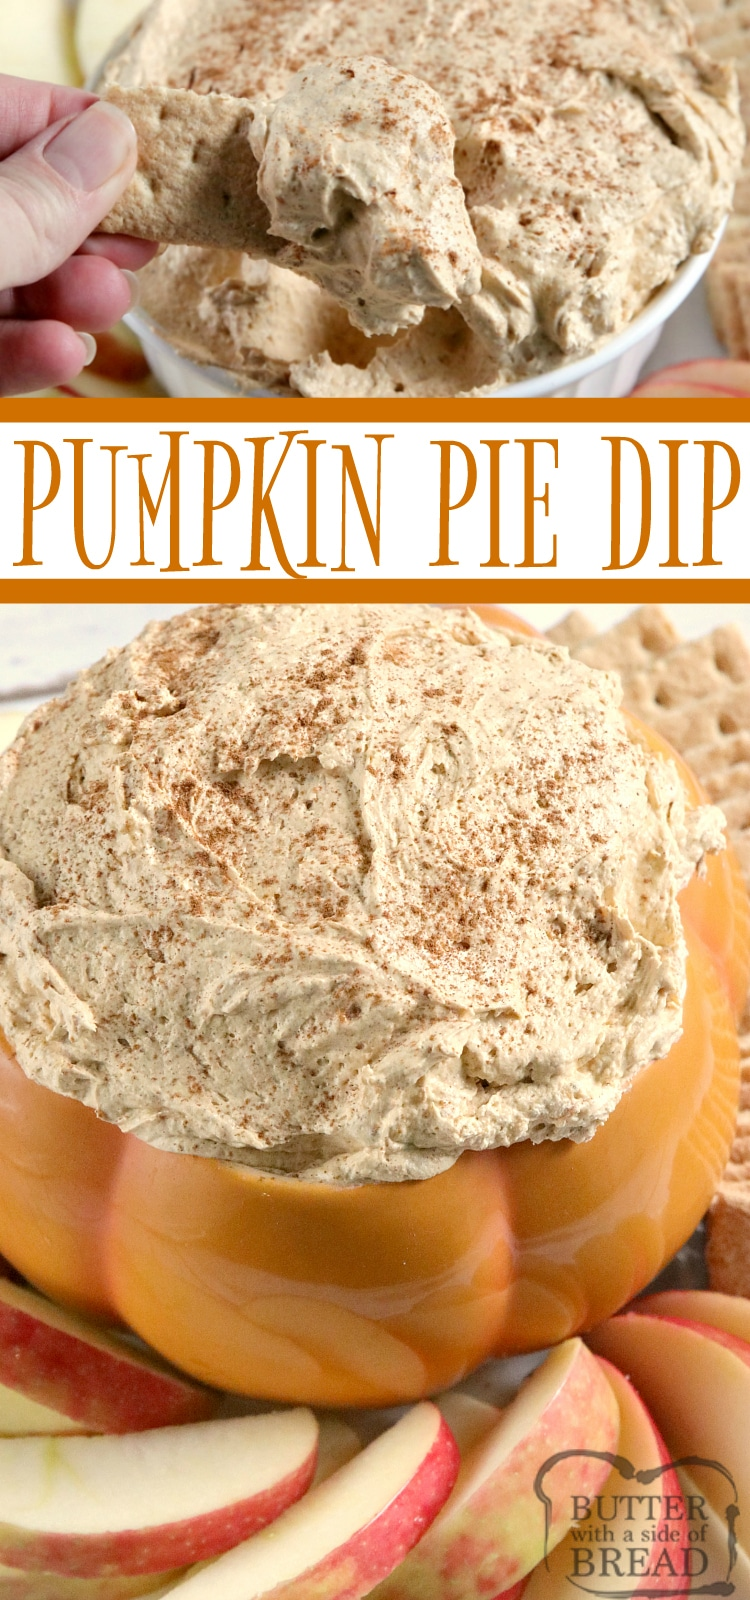 Pumpkin Pie Dip is perfect for dipping apples and graham crackers and is made in just a few minutes with only five simple ingredients! This easy pumpkin dip is made with an entire can of pumpkin for tons of pumpkin flavor.